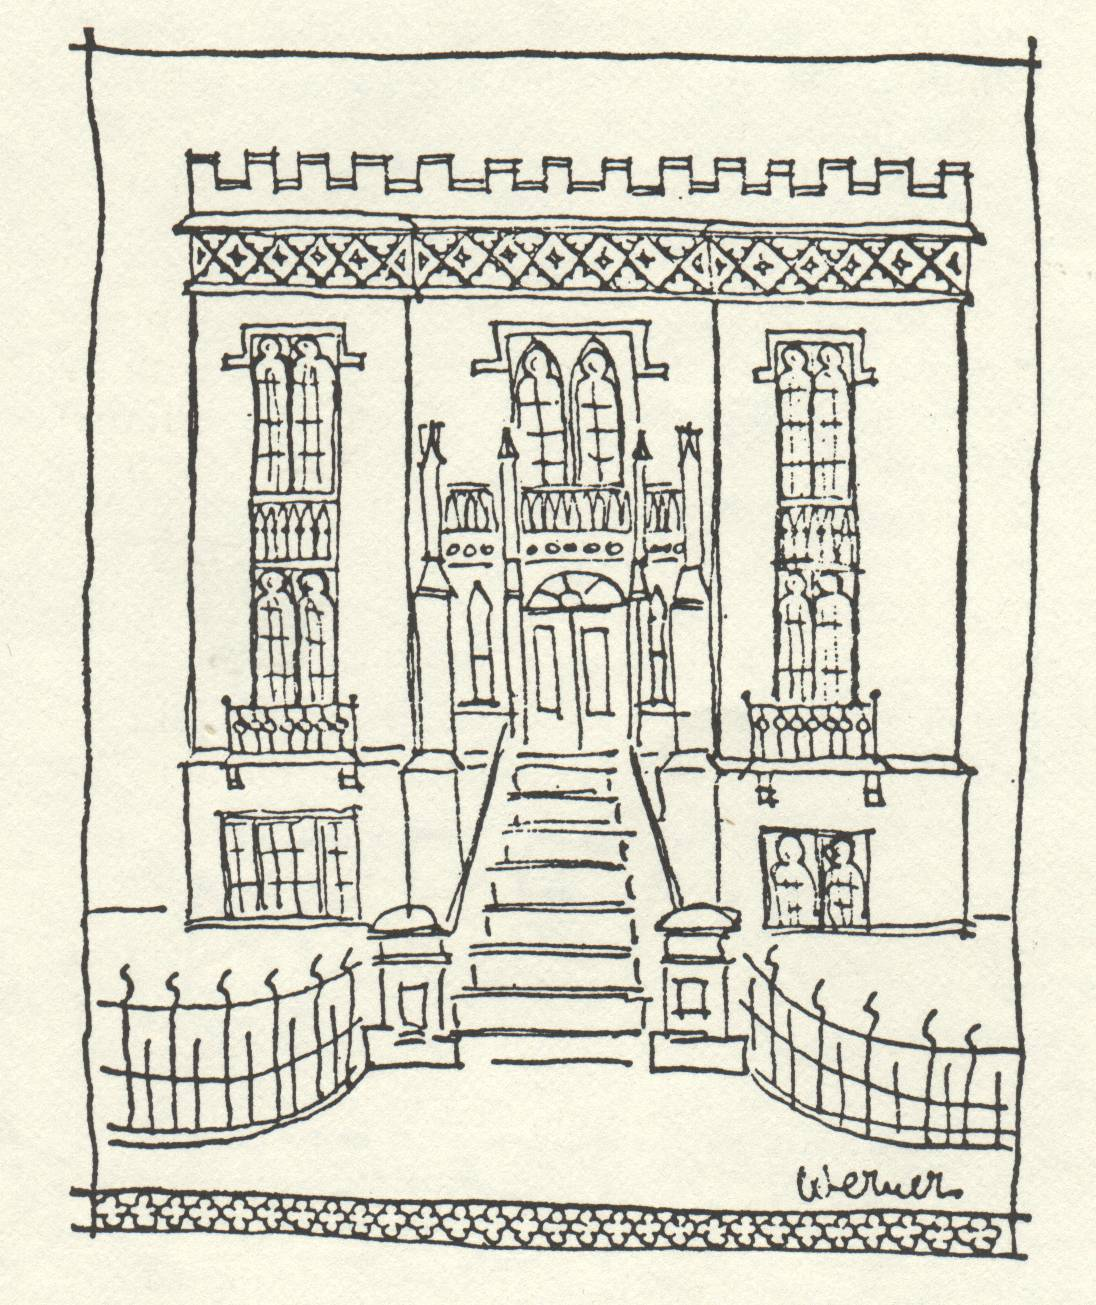 ornate drawing of a building